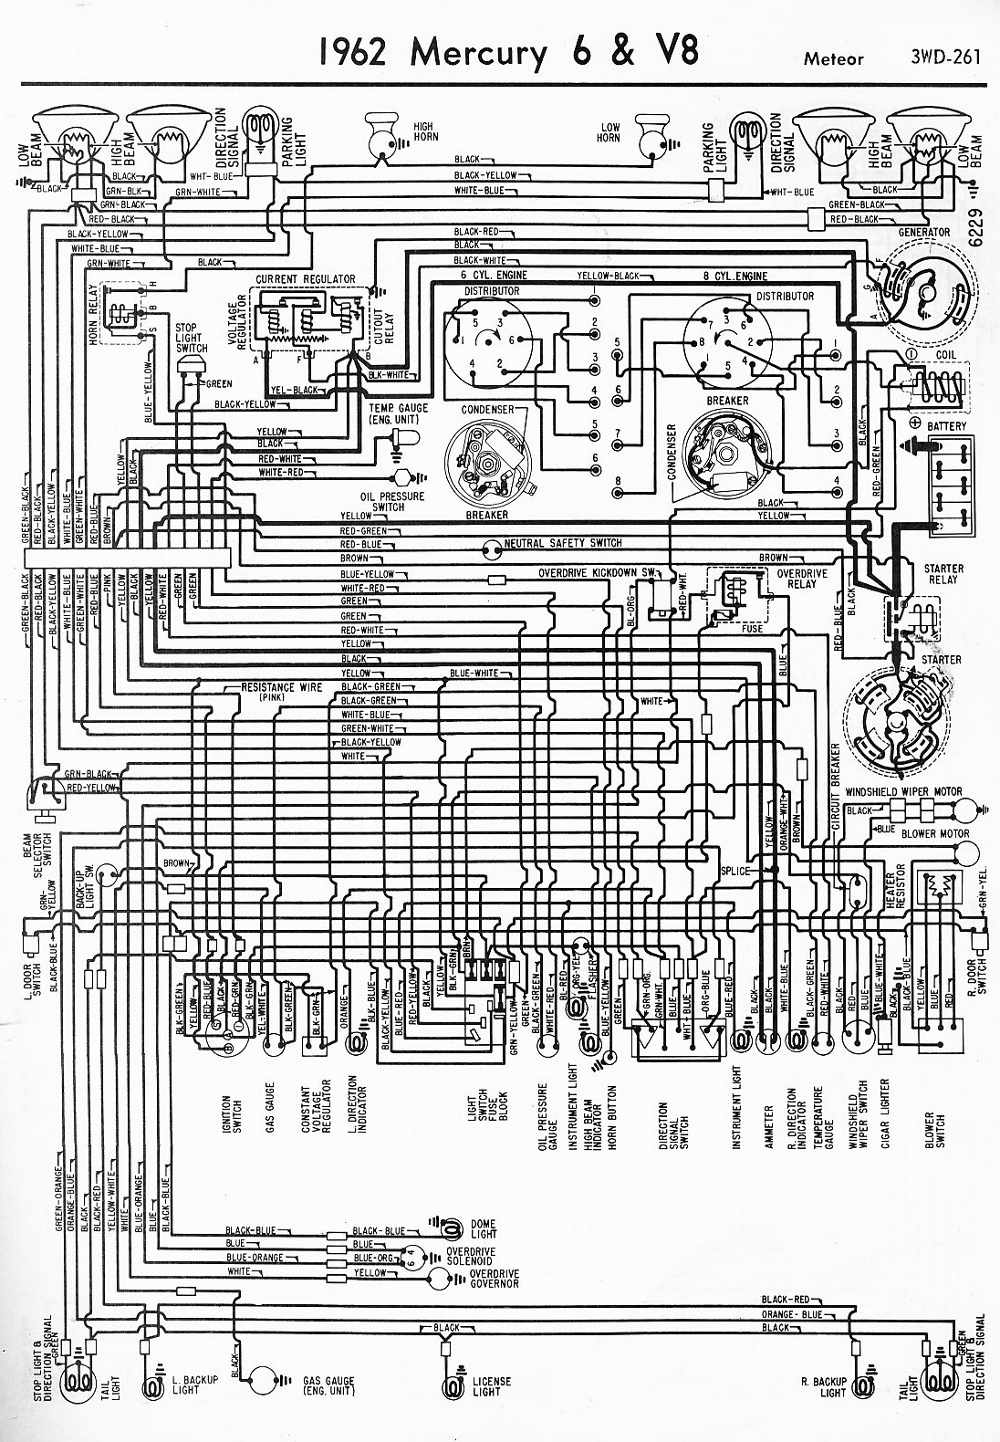 proa 1962 mercury 6 and v8 meteor wiring diagram. Black Bedroom Furniture Sets. Home Design Ideas